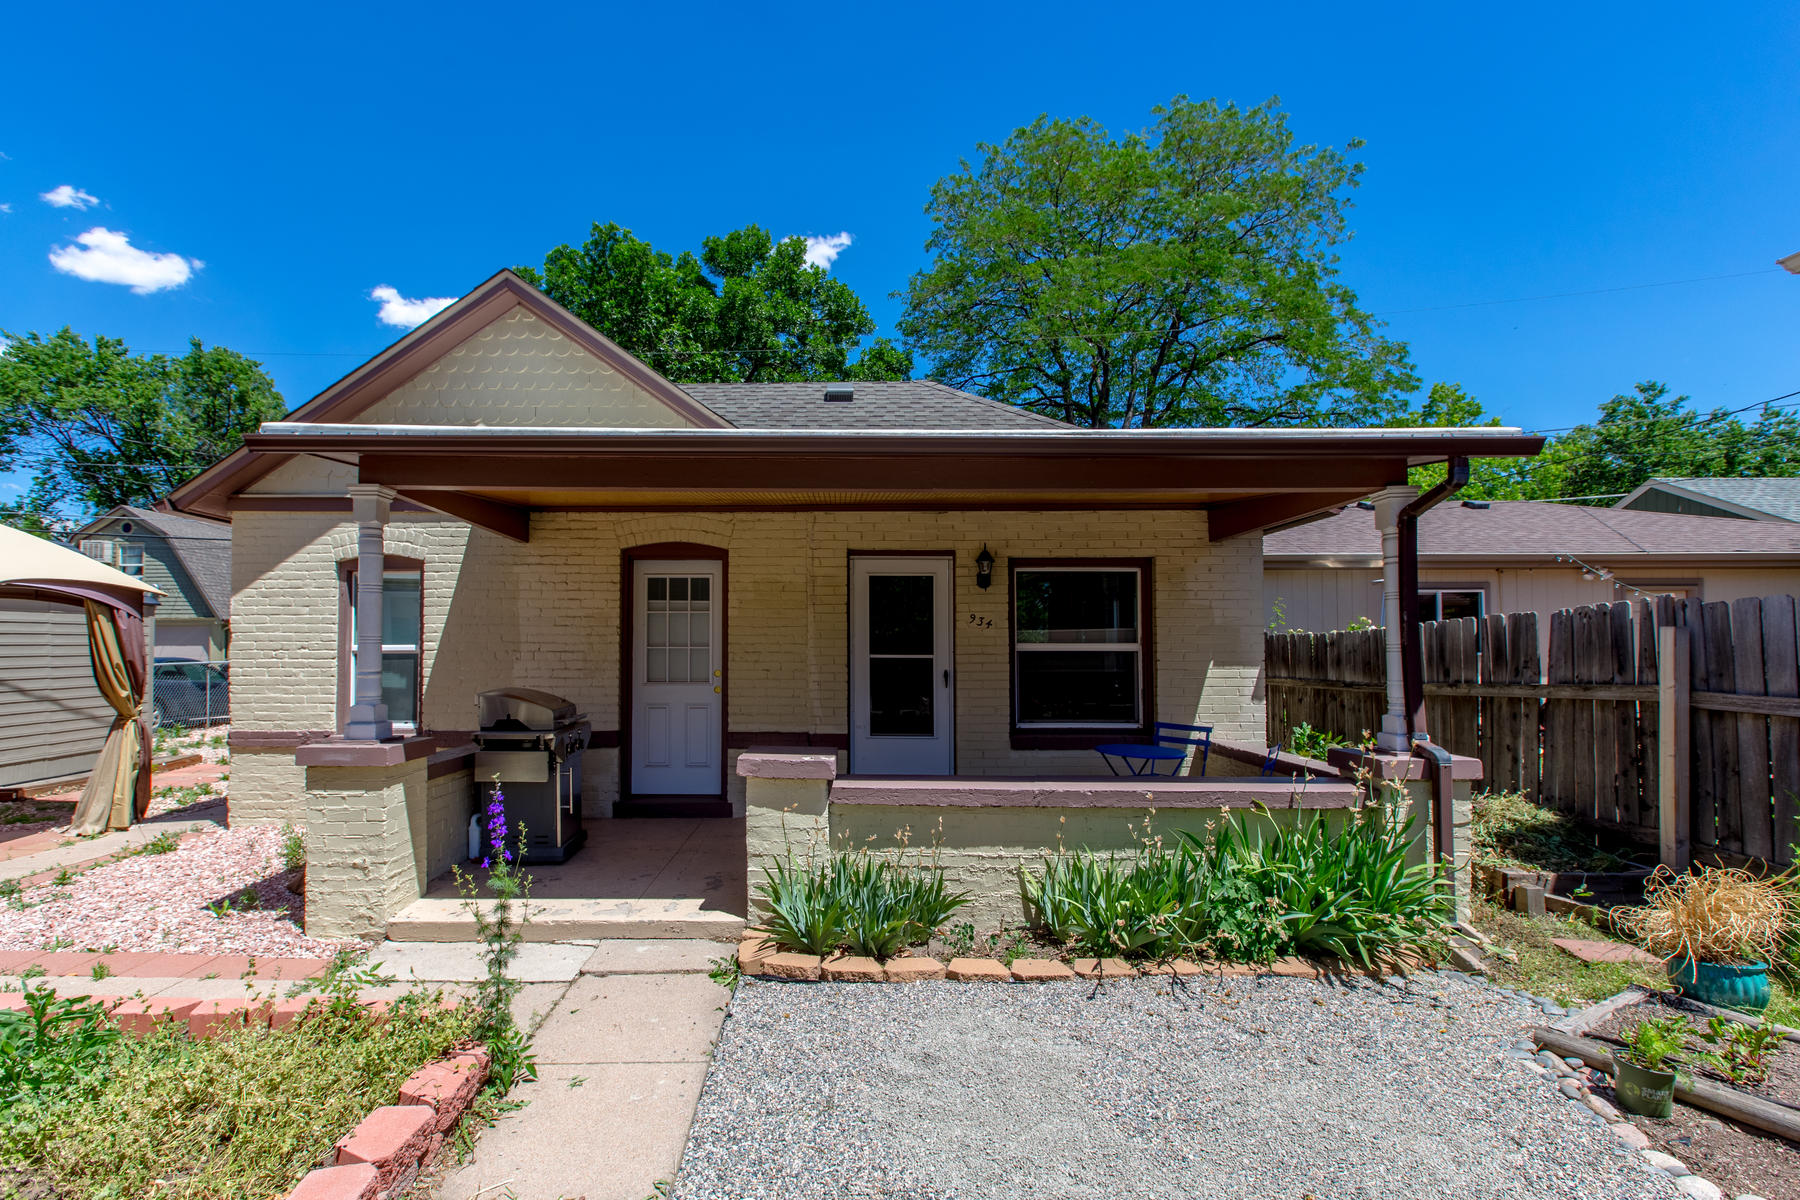 Single Family Home for Active at 934 South Logan Street 934 South Logan Street Denver, Colorado 80209 United States